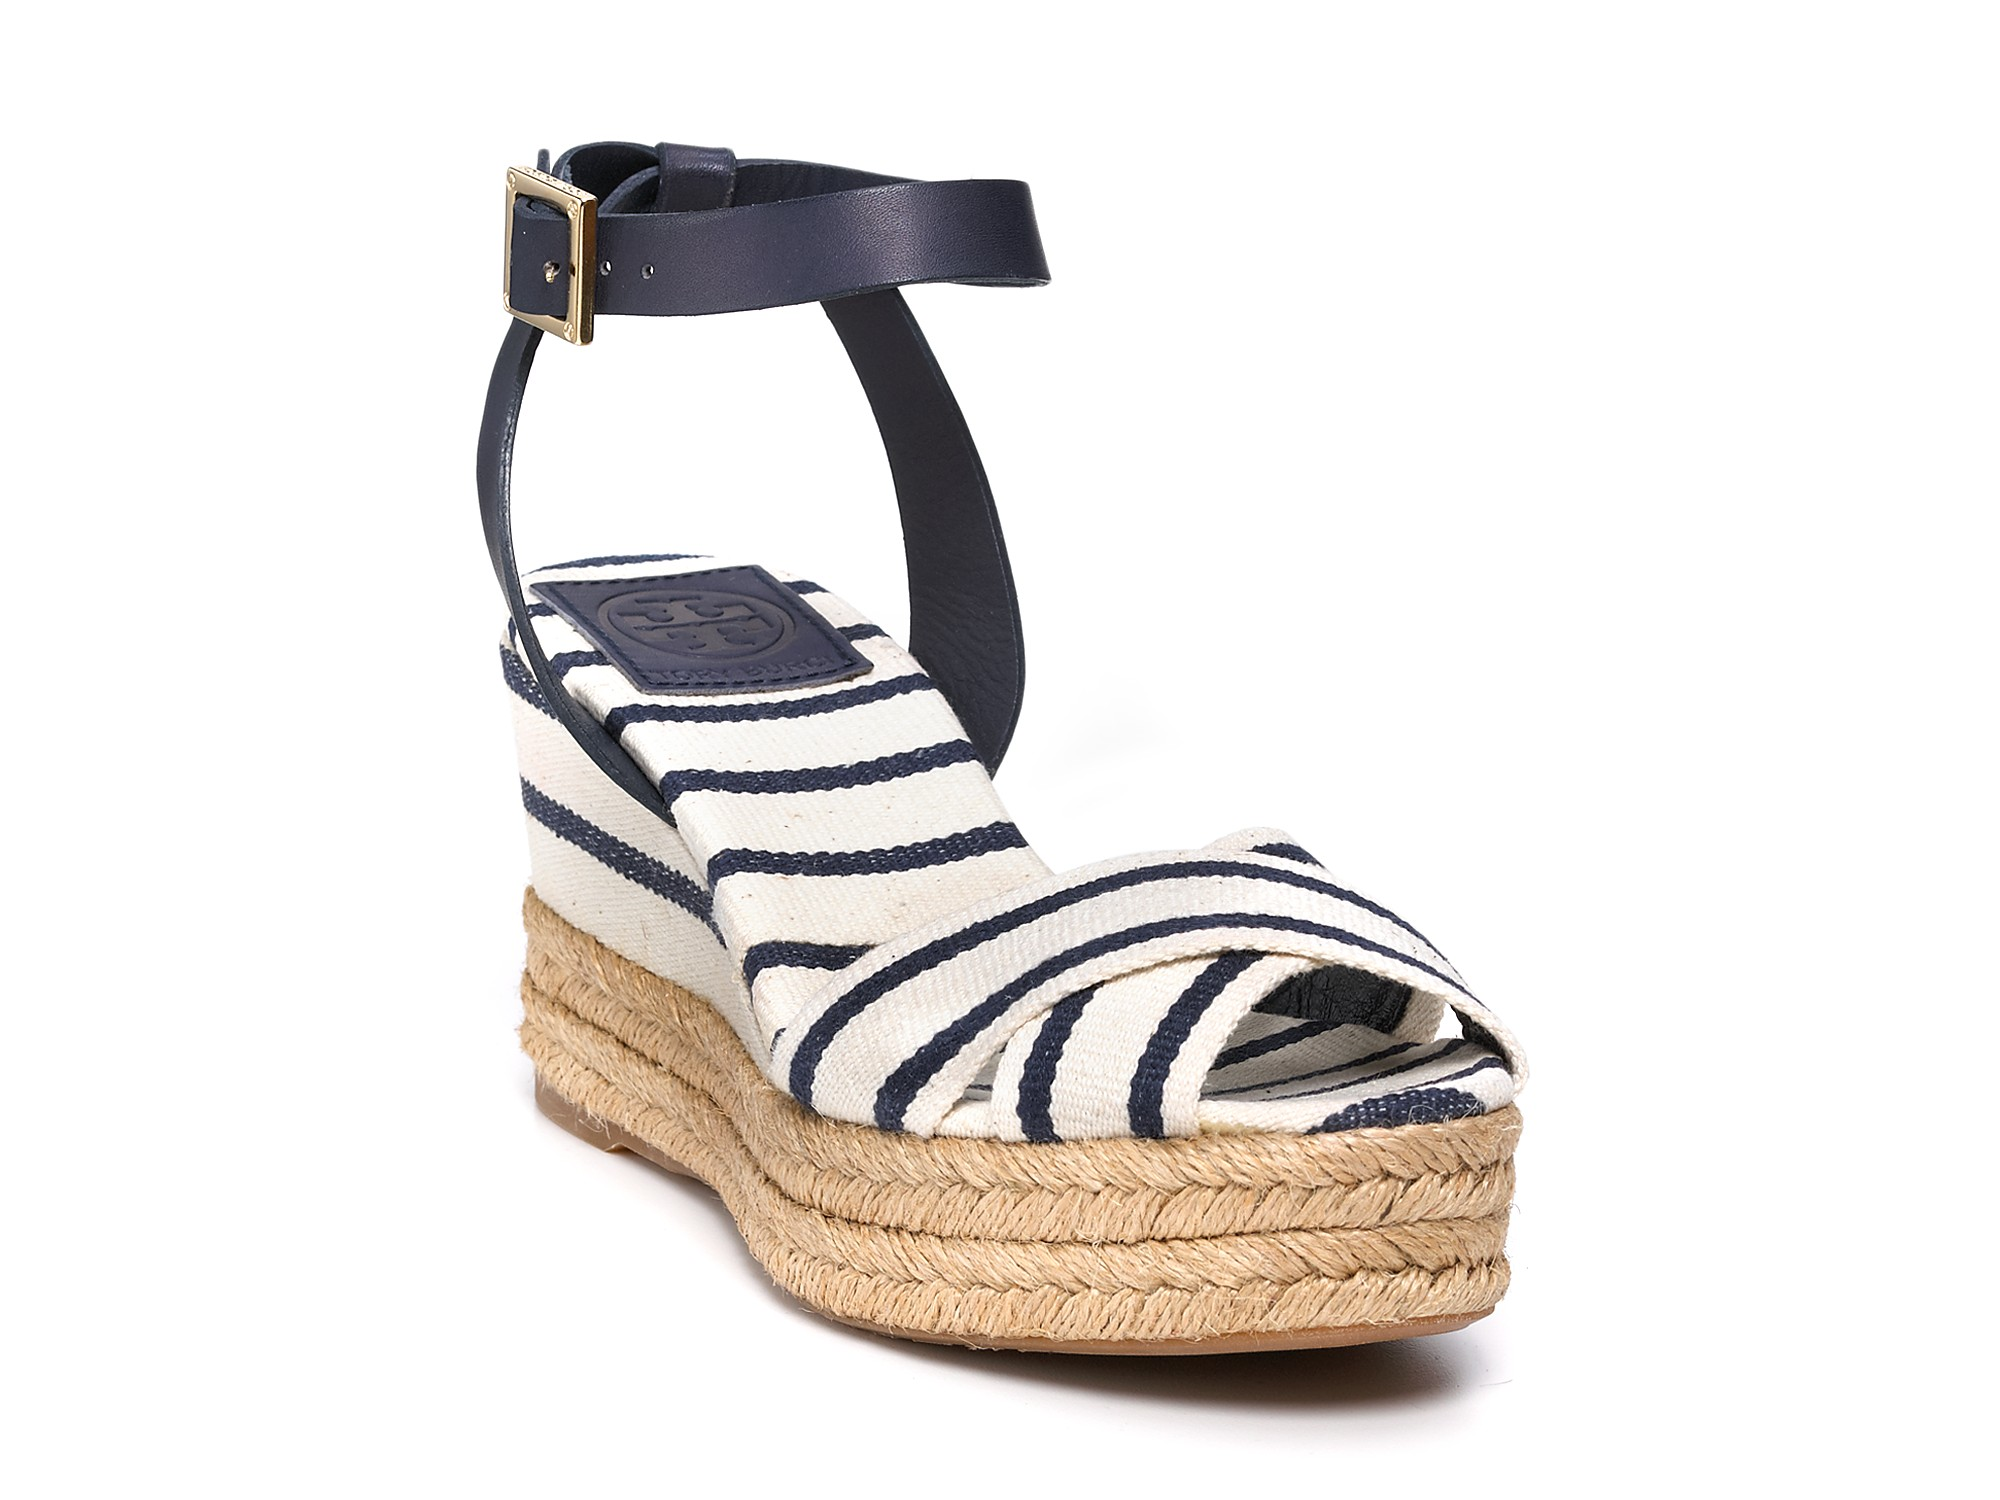 32a6ba7337f Lyst - Tory Burch Espadrilles Karissa Mid Wedge in Blue